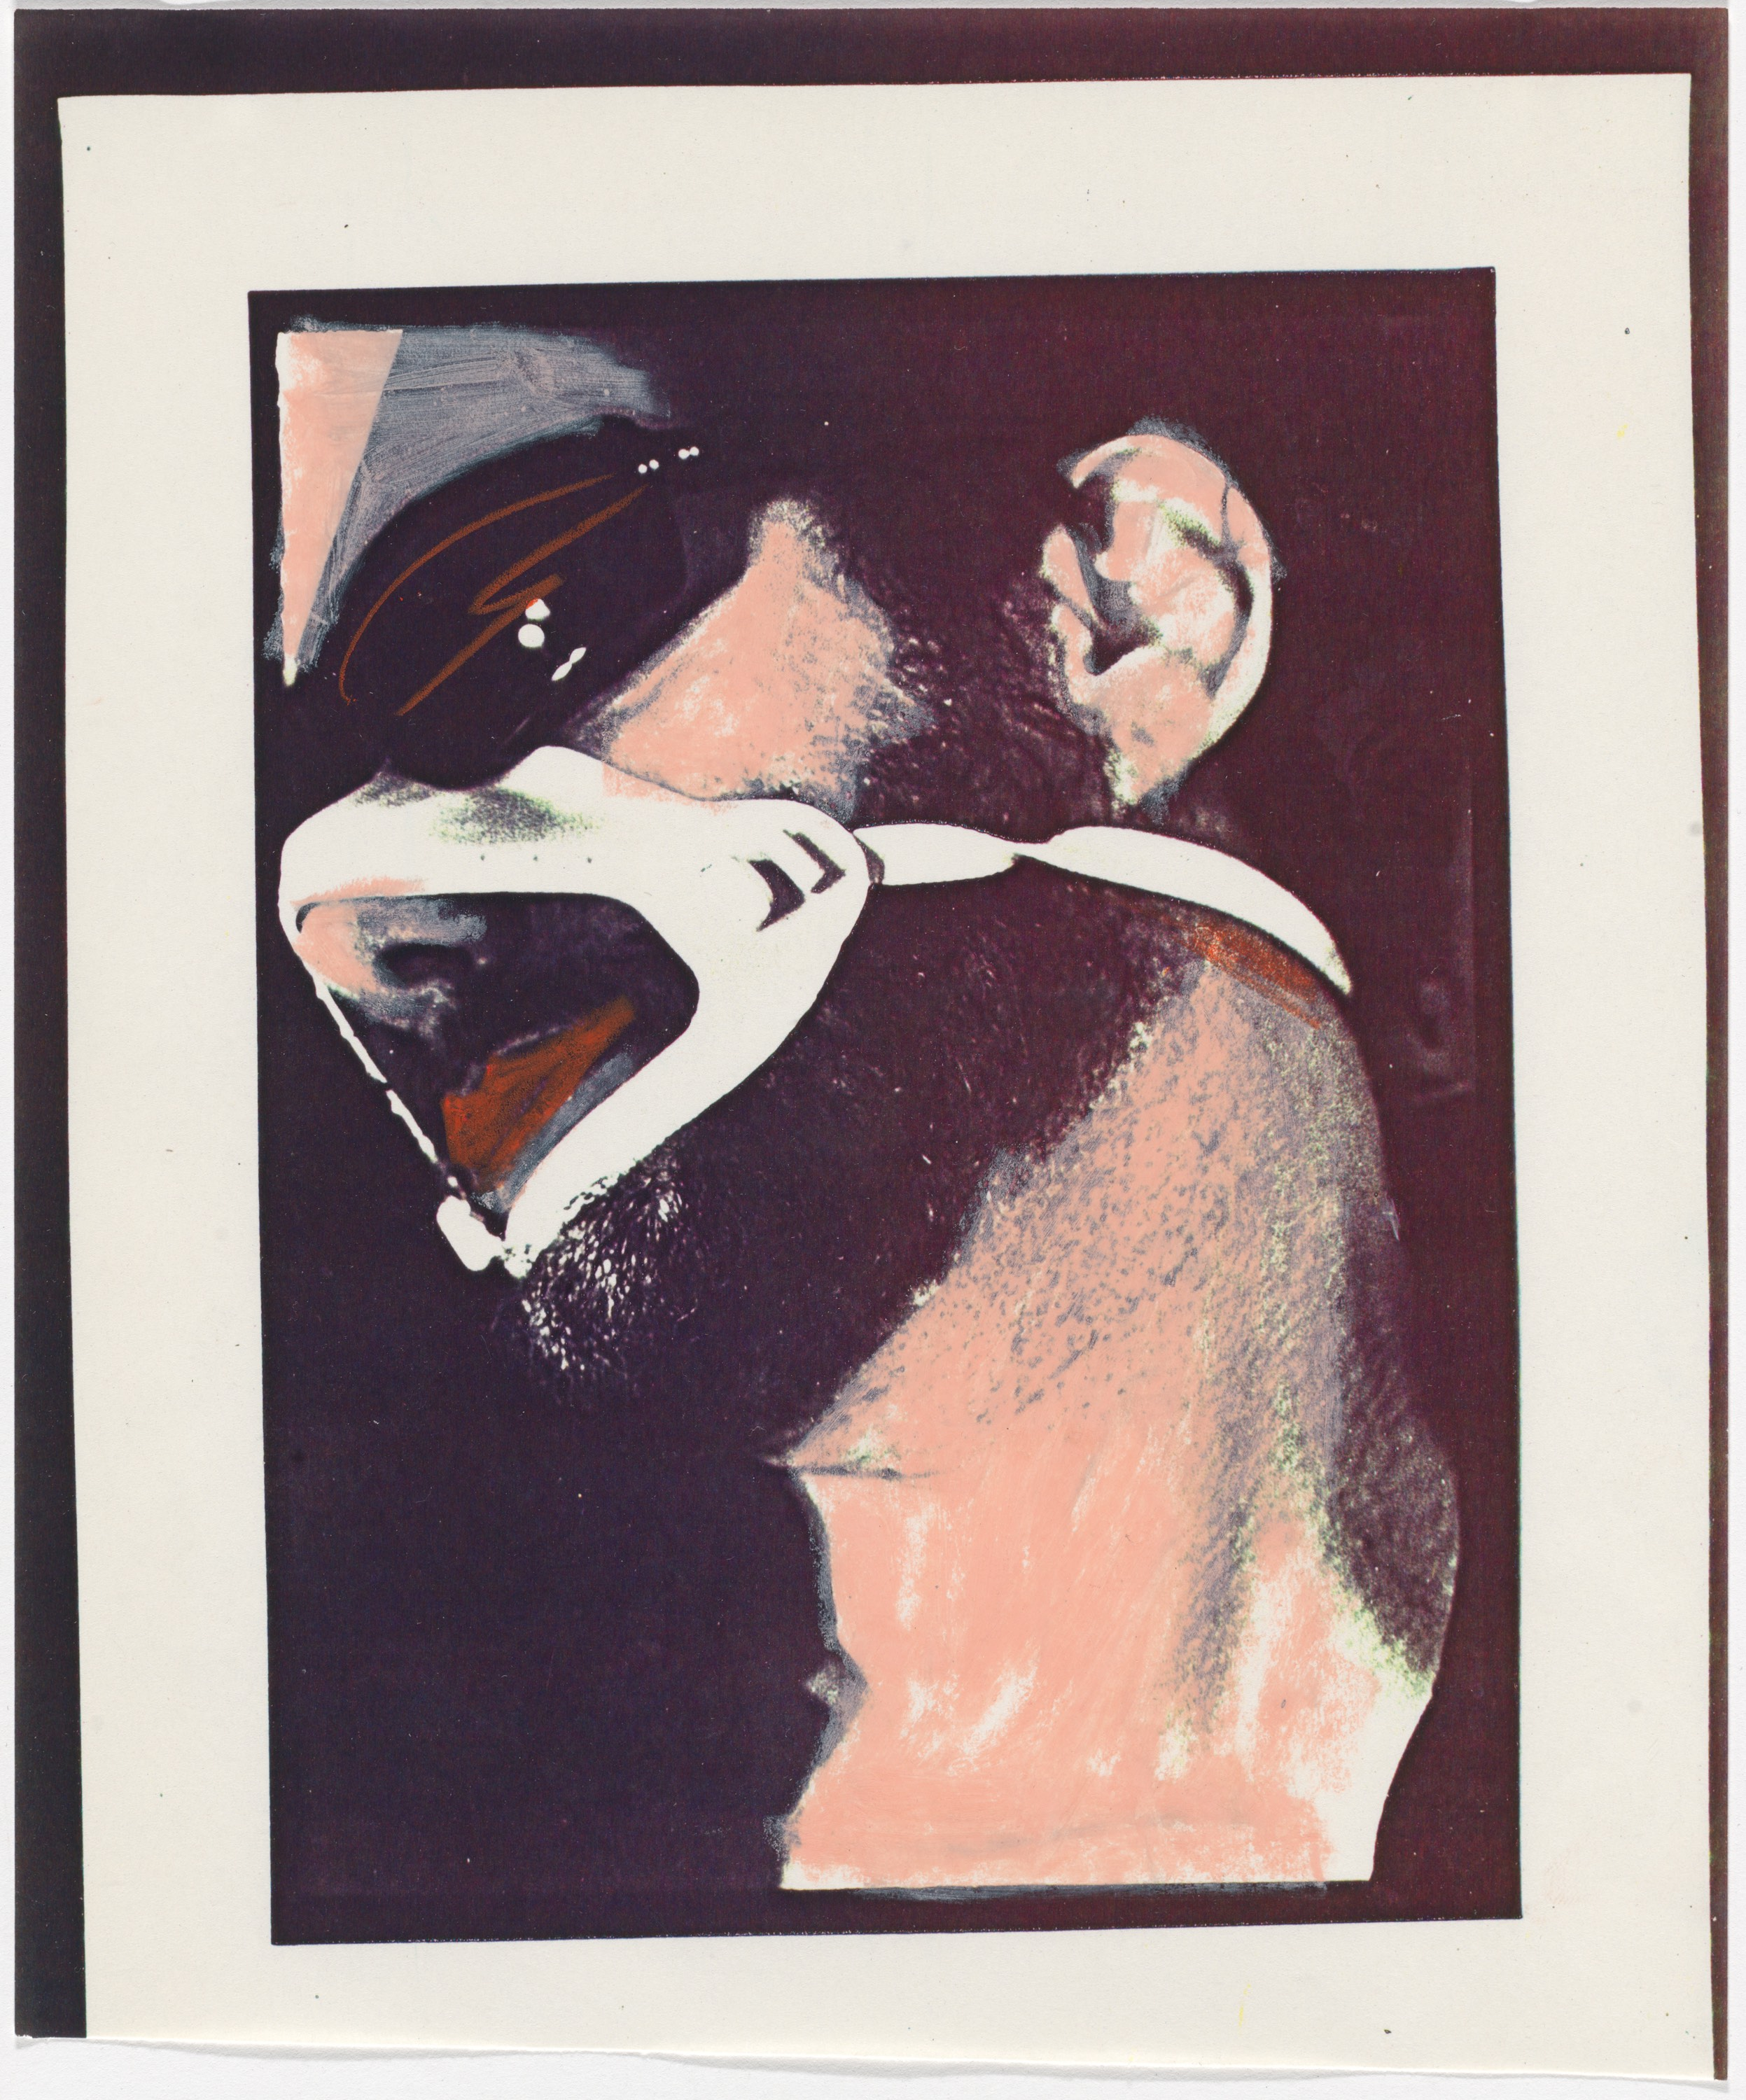 Anney Bonney (American, born 1949). Process art from Shattered (Male Bondage: Carl Apfelschnitt), 1978–79. Xerox collage. The Museum of Modern Art, New York. Department of Film Special Collections